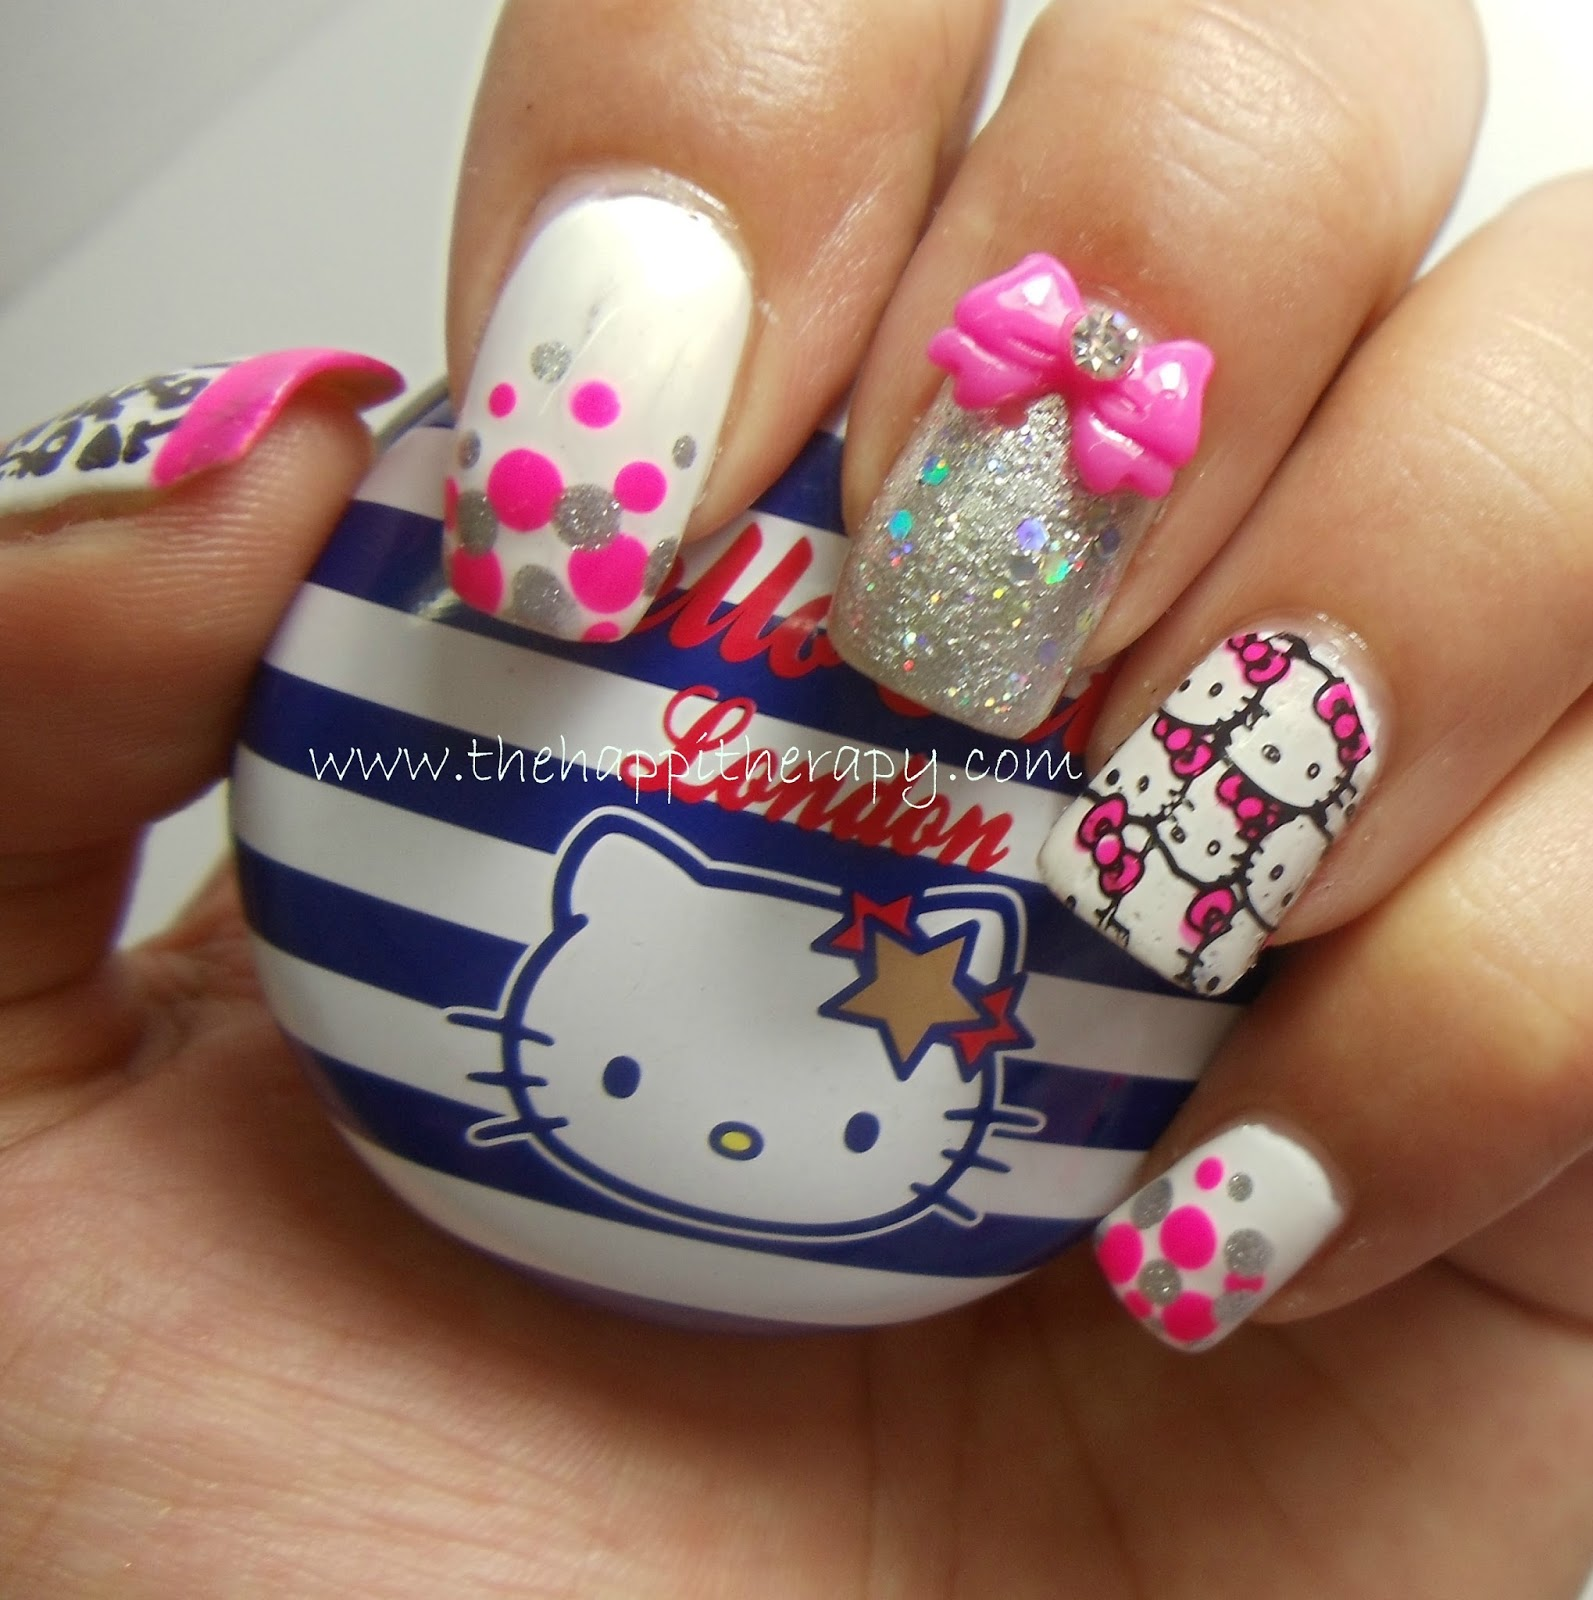 Manishas followmanimatters hello kitty nail art by dhara from hello kitty nail art by dhara from thehappitherapy prinsesfo Image collections